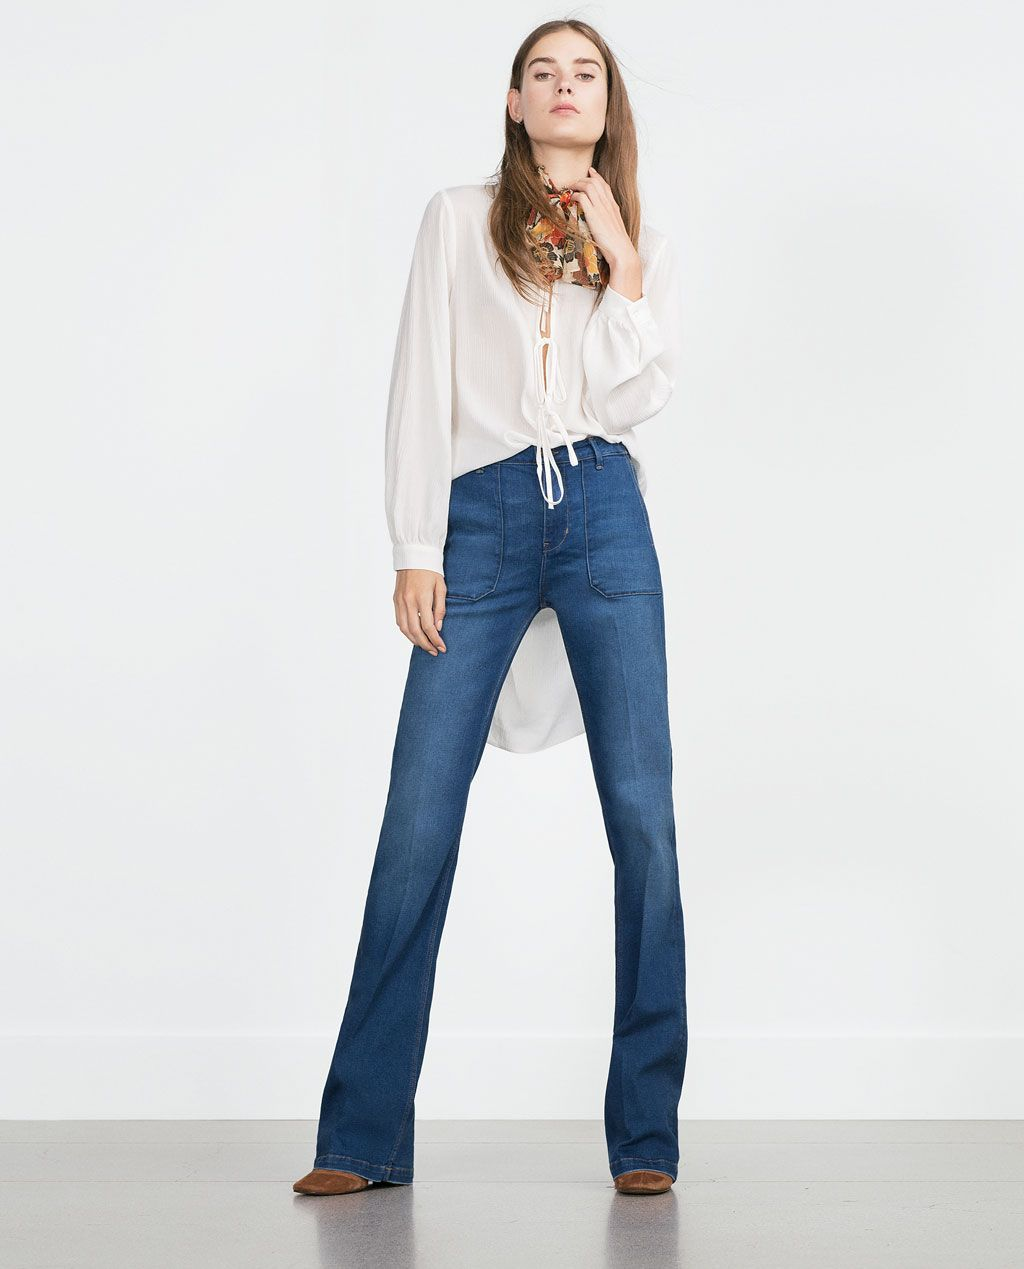 flared jeansnew this weekwomancollection aw15 zara